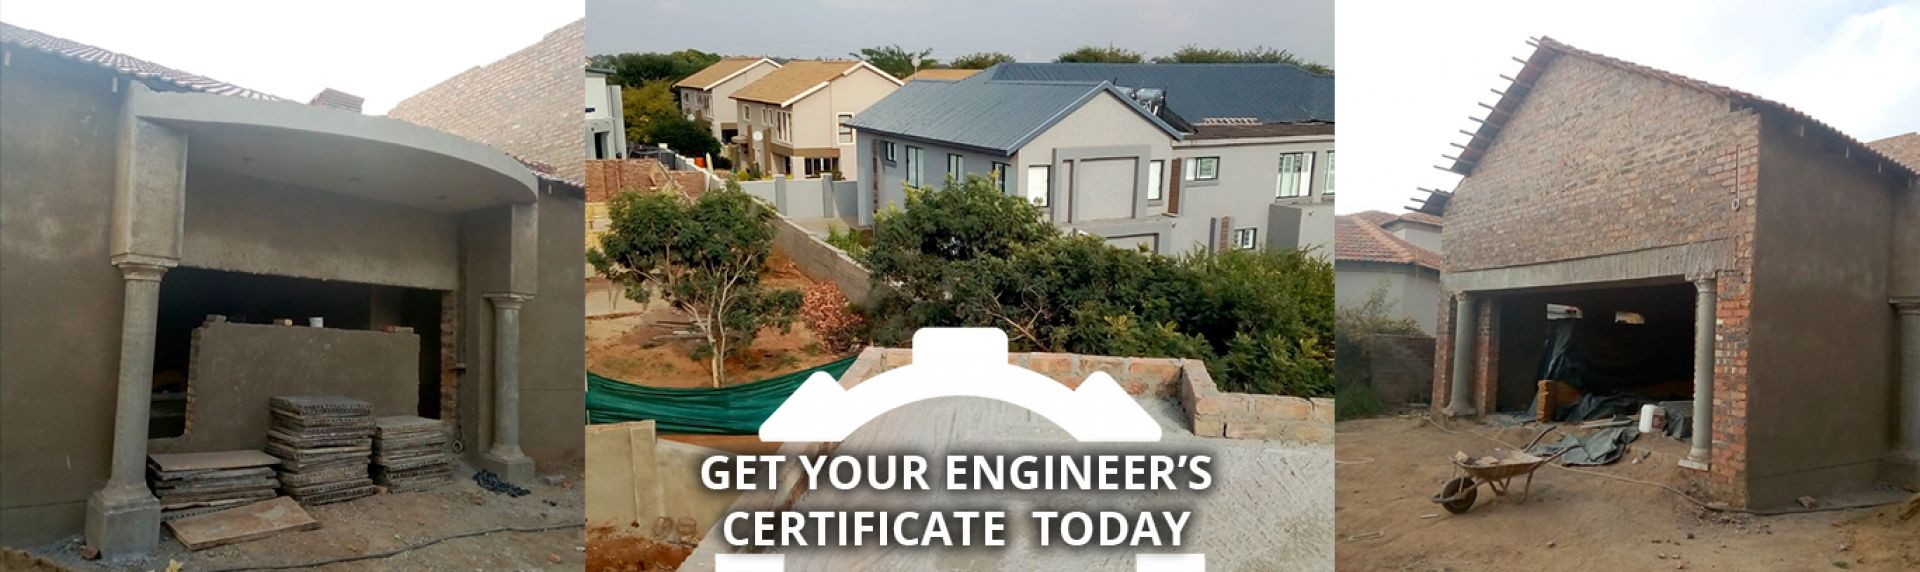 Engineer Certificate